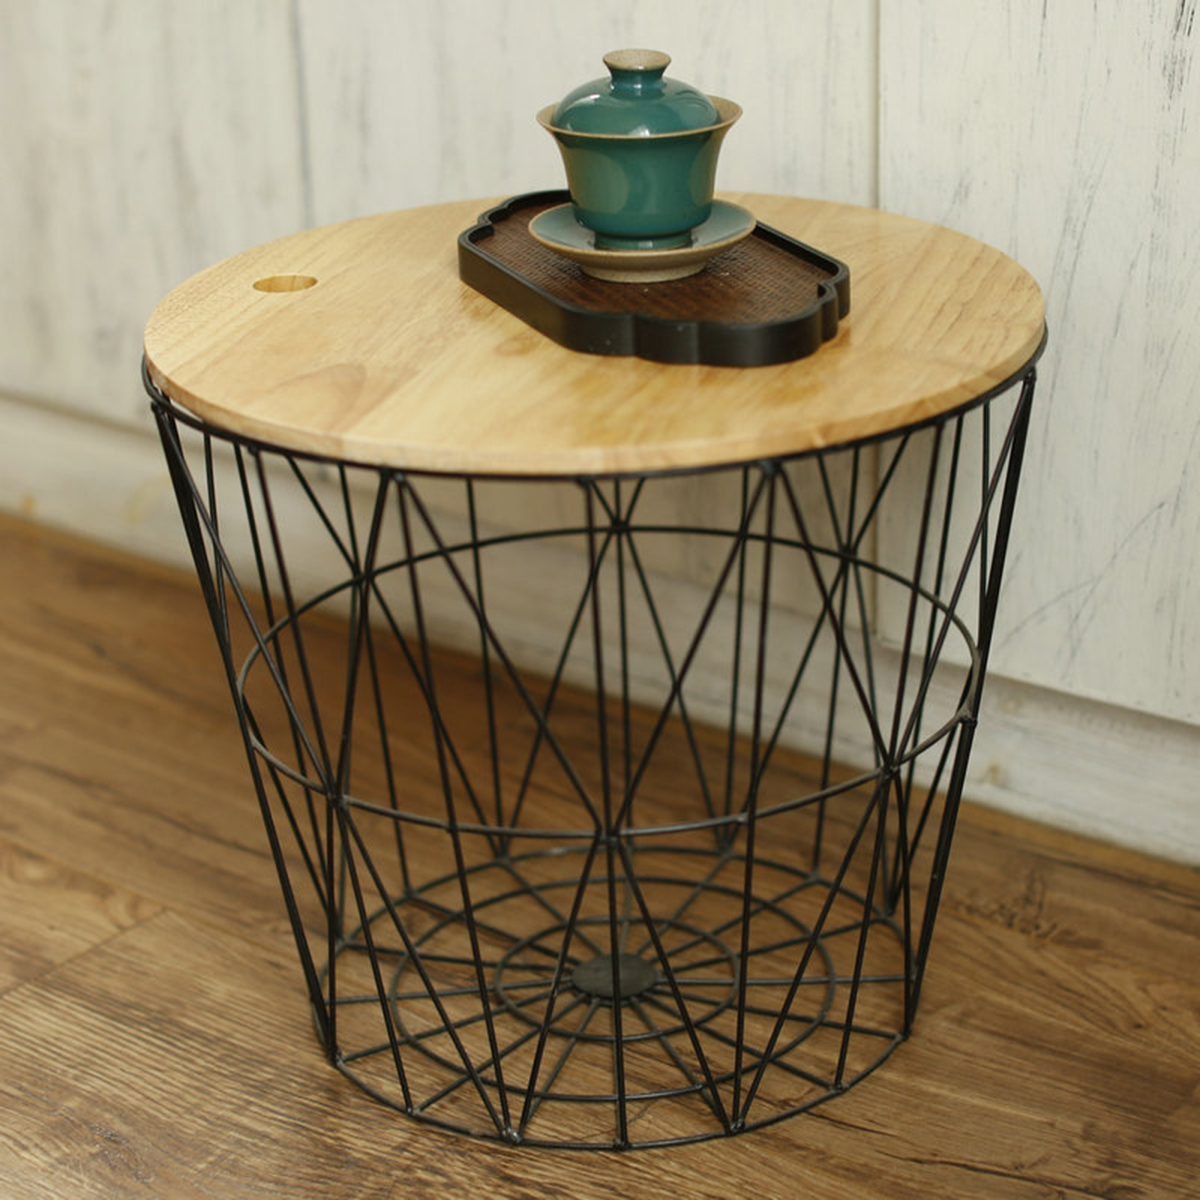 white black metal wire basket wooden top side table storage loft accent with baskets detail nautical outdoor lighting sconces brown copy furniture tall bedside tables drawers